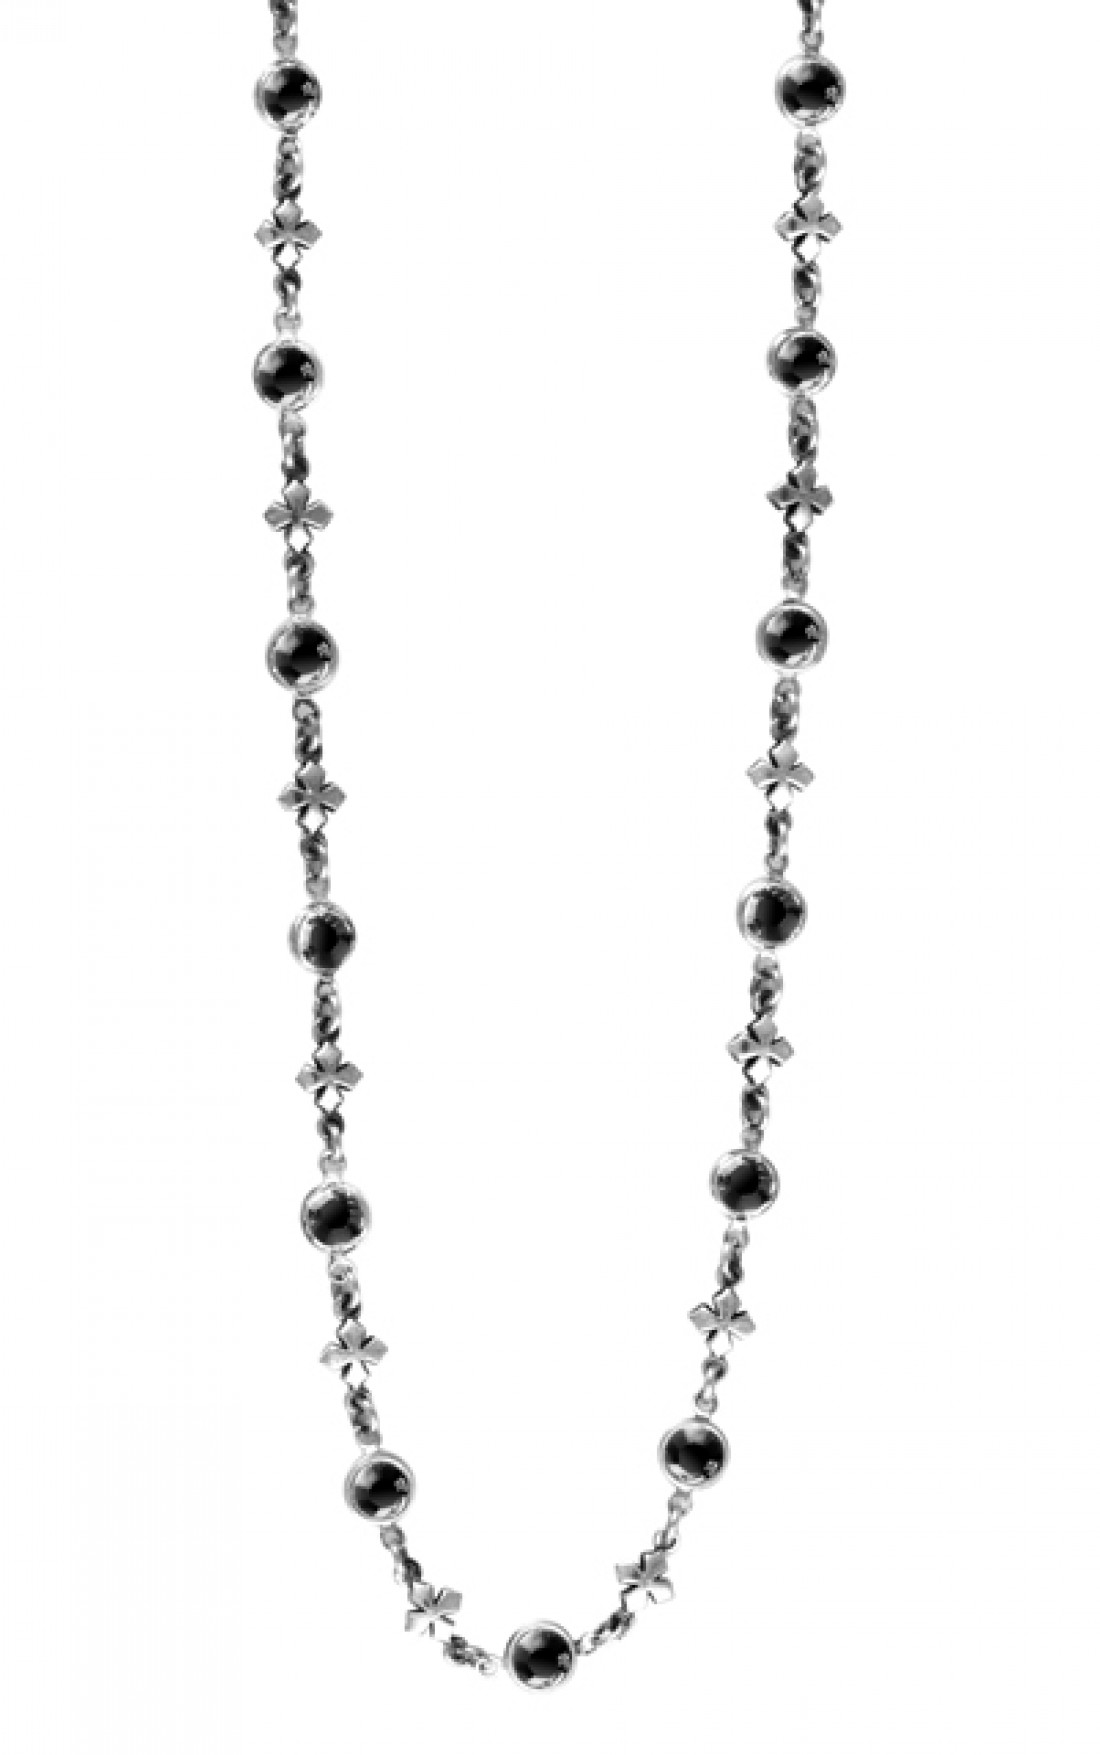 King Baby Baby - MB Cross Motif Chain With Black Swarovski Crystal Station (Q52-7106)